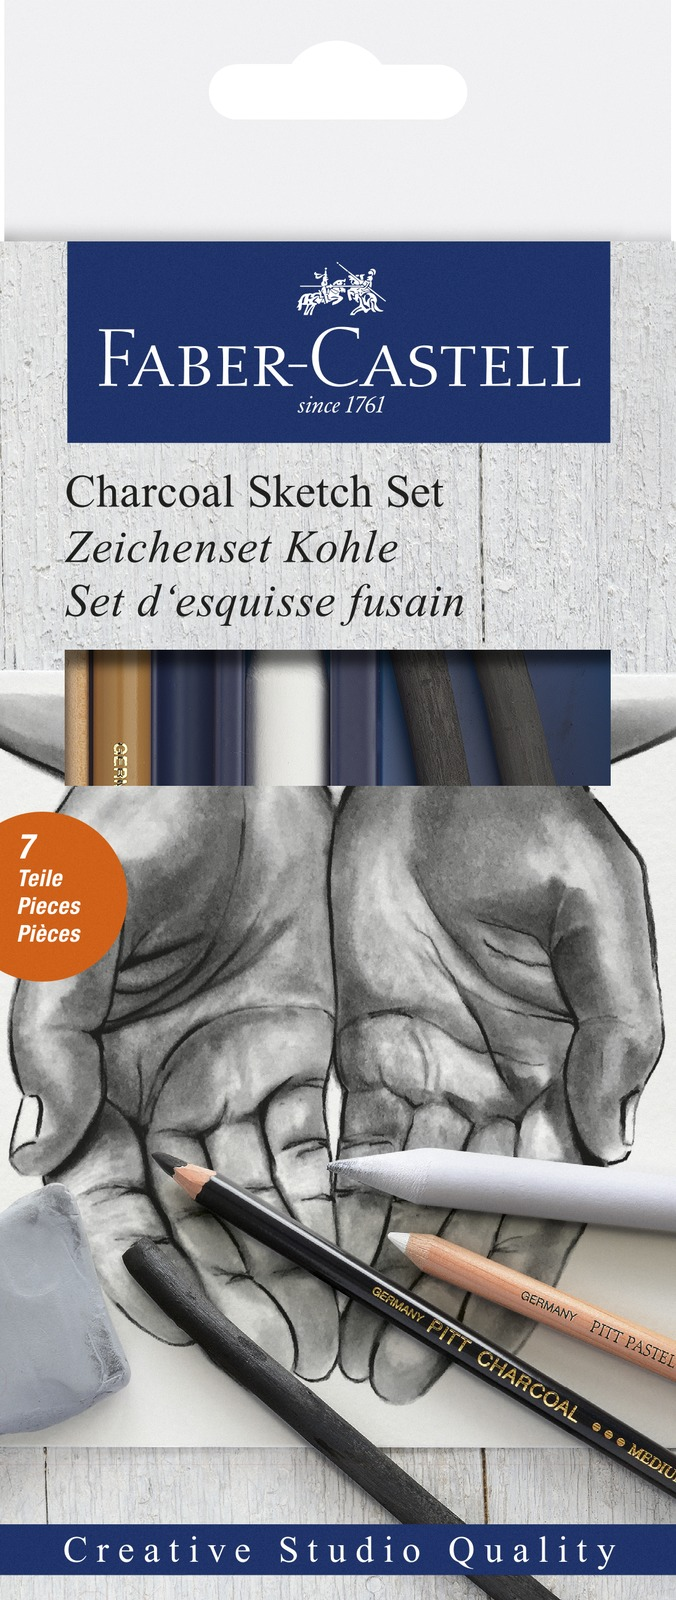 Faber-Castell: Charcoal Sketch Set image